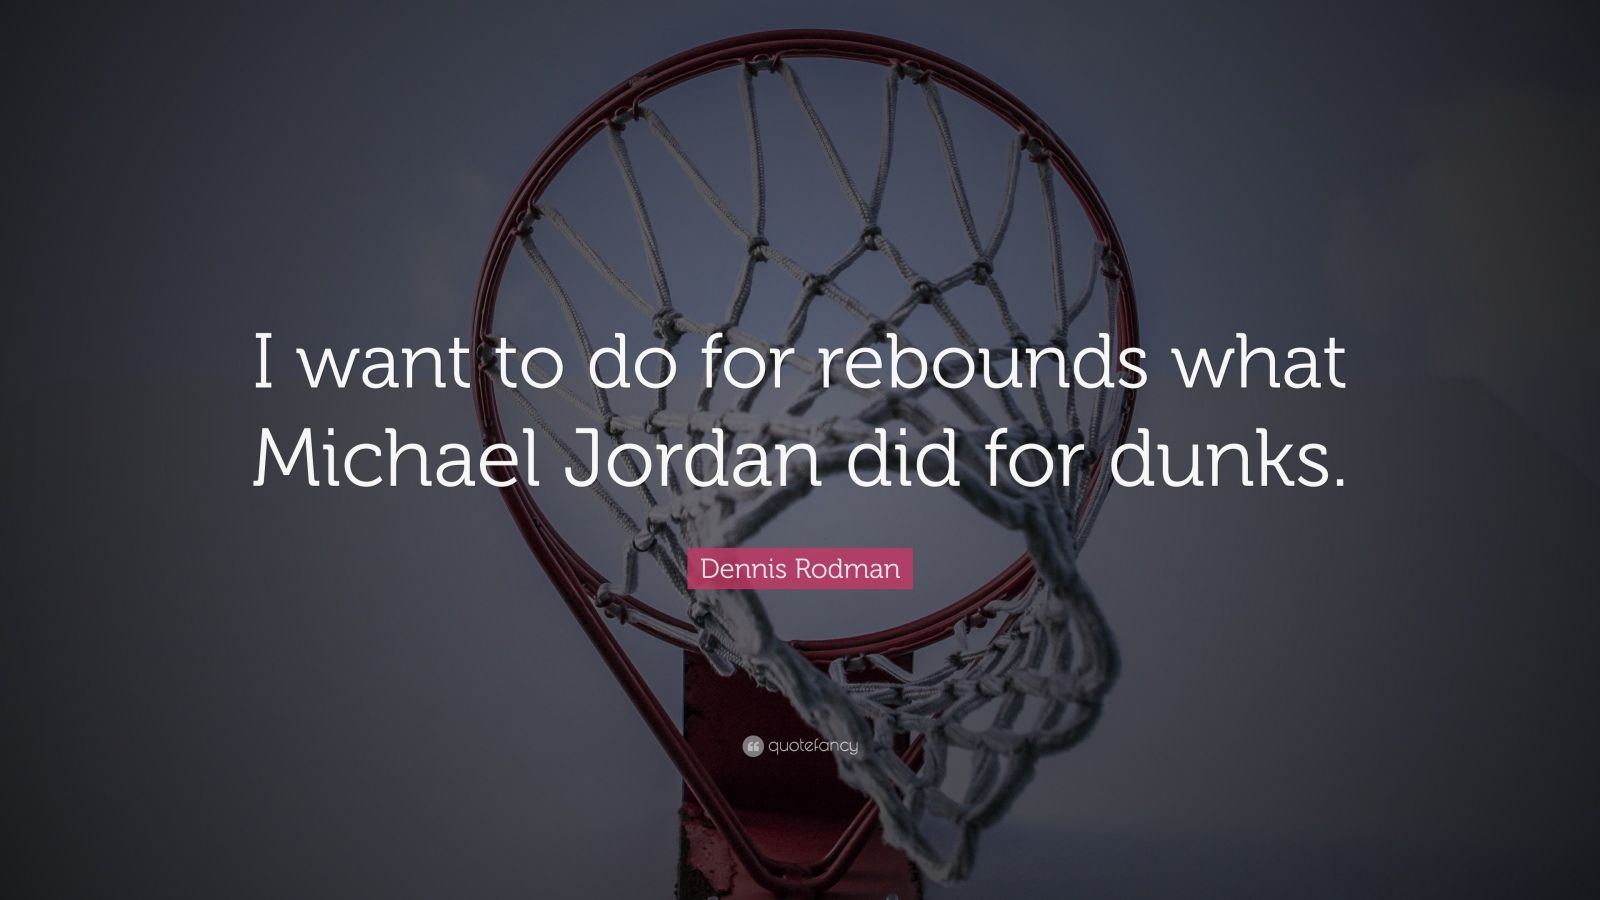 """Dennis Rodman Quote: """"I want to do for rebounds what Michael Jordan did for dunks."""""""